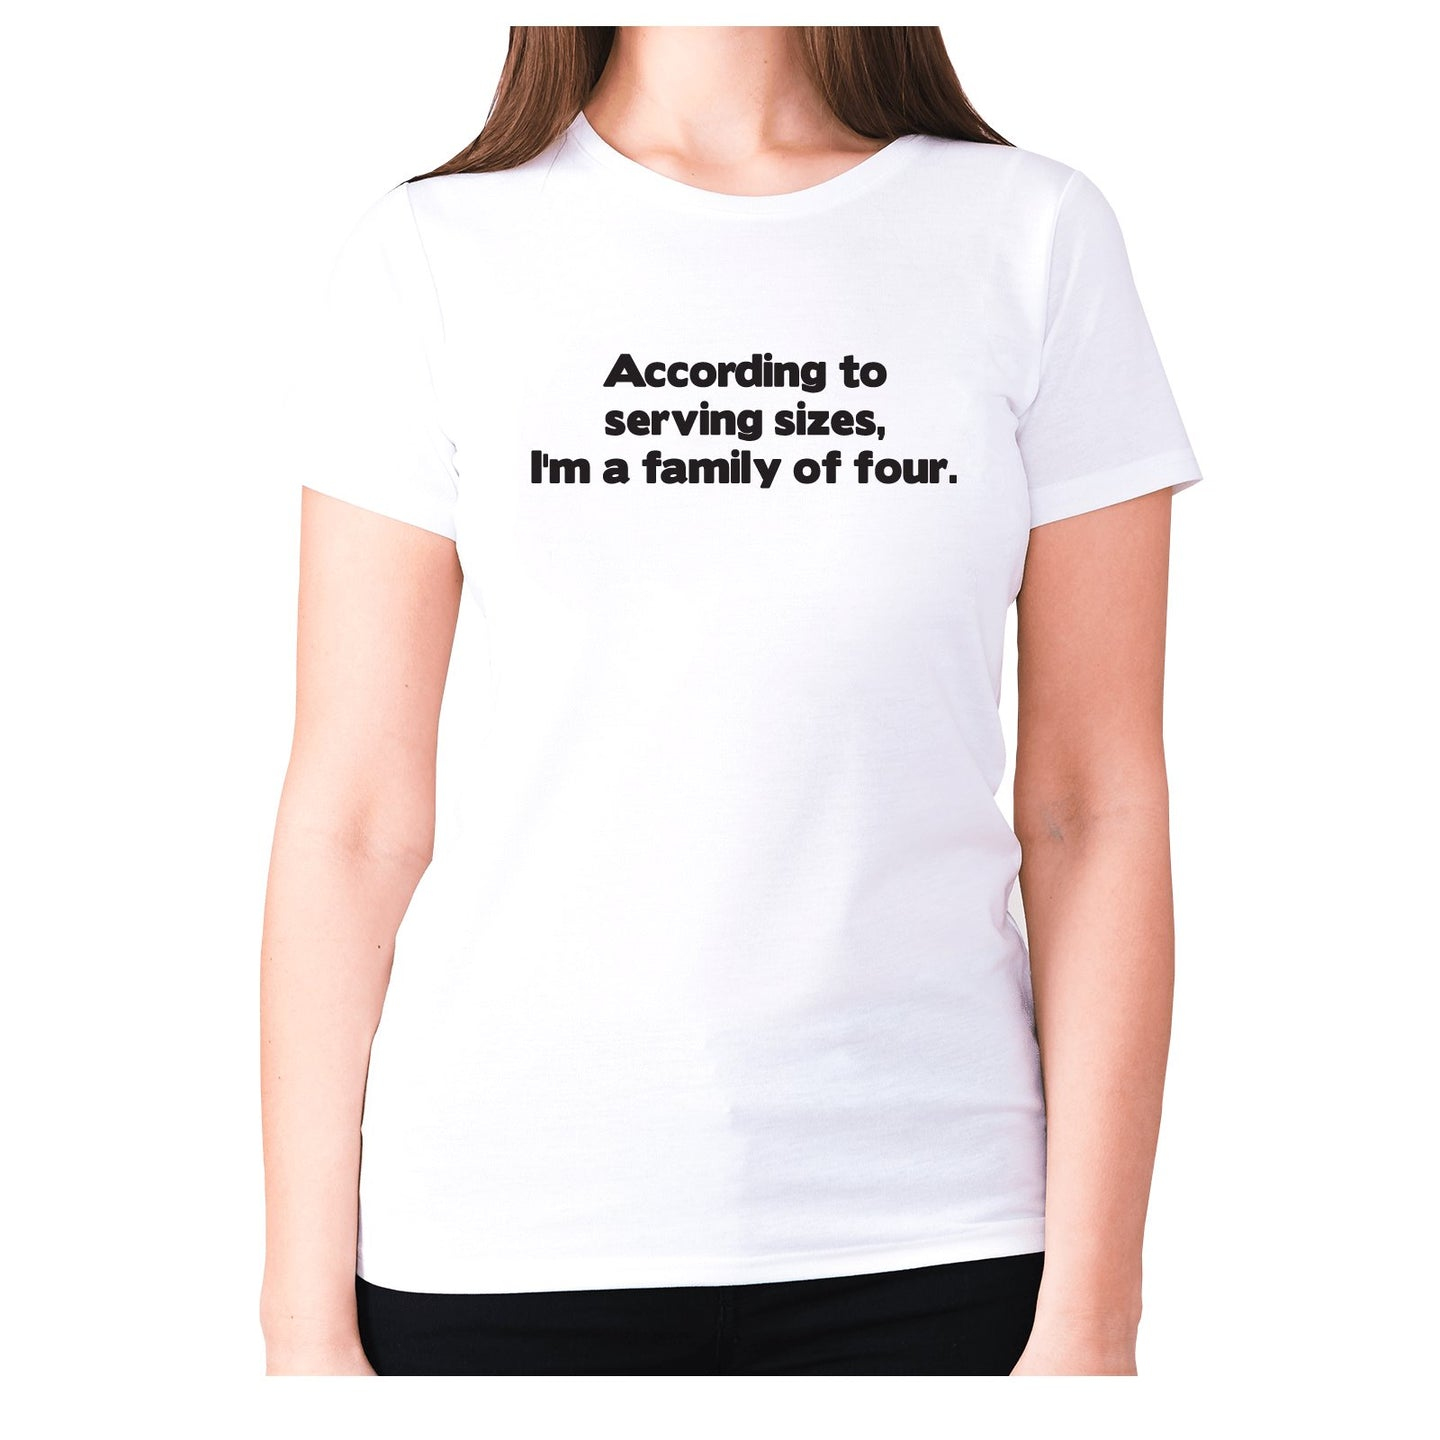 According to serving sizes, I'm a family of four - women's premium t-shirt - Graphic Gear